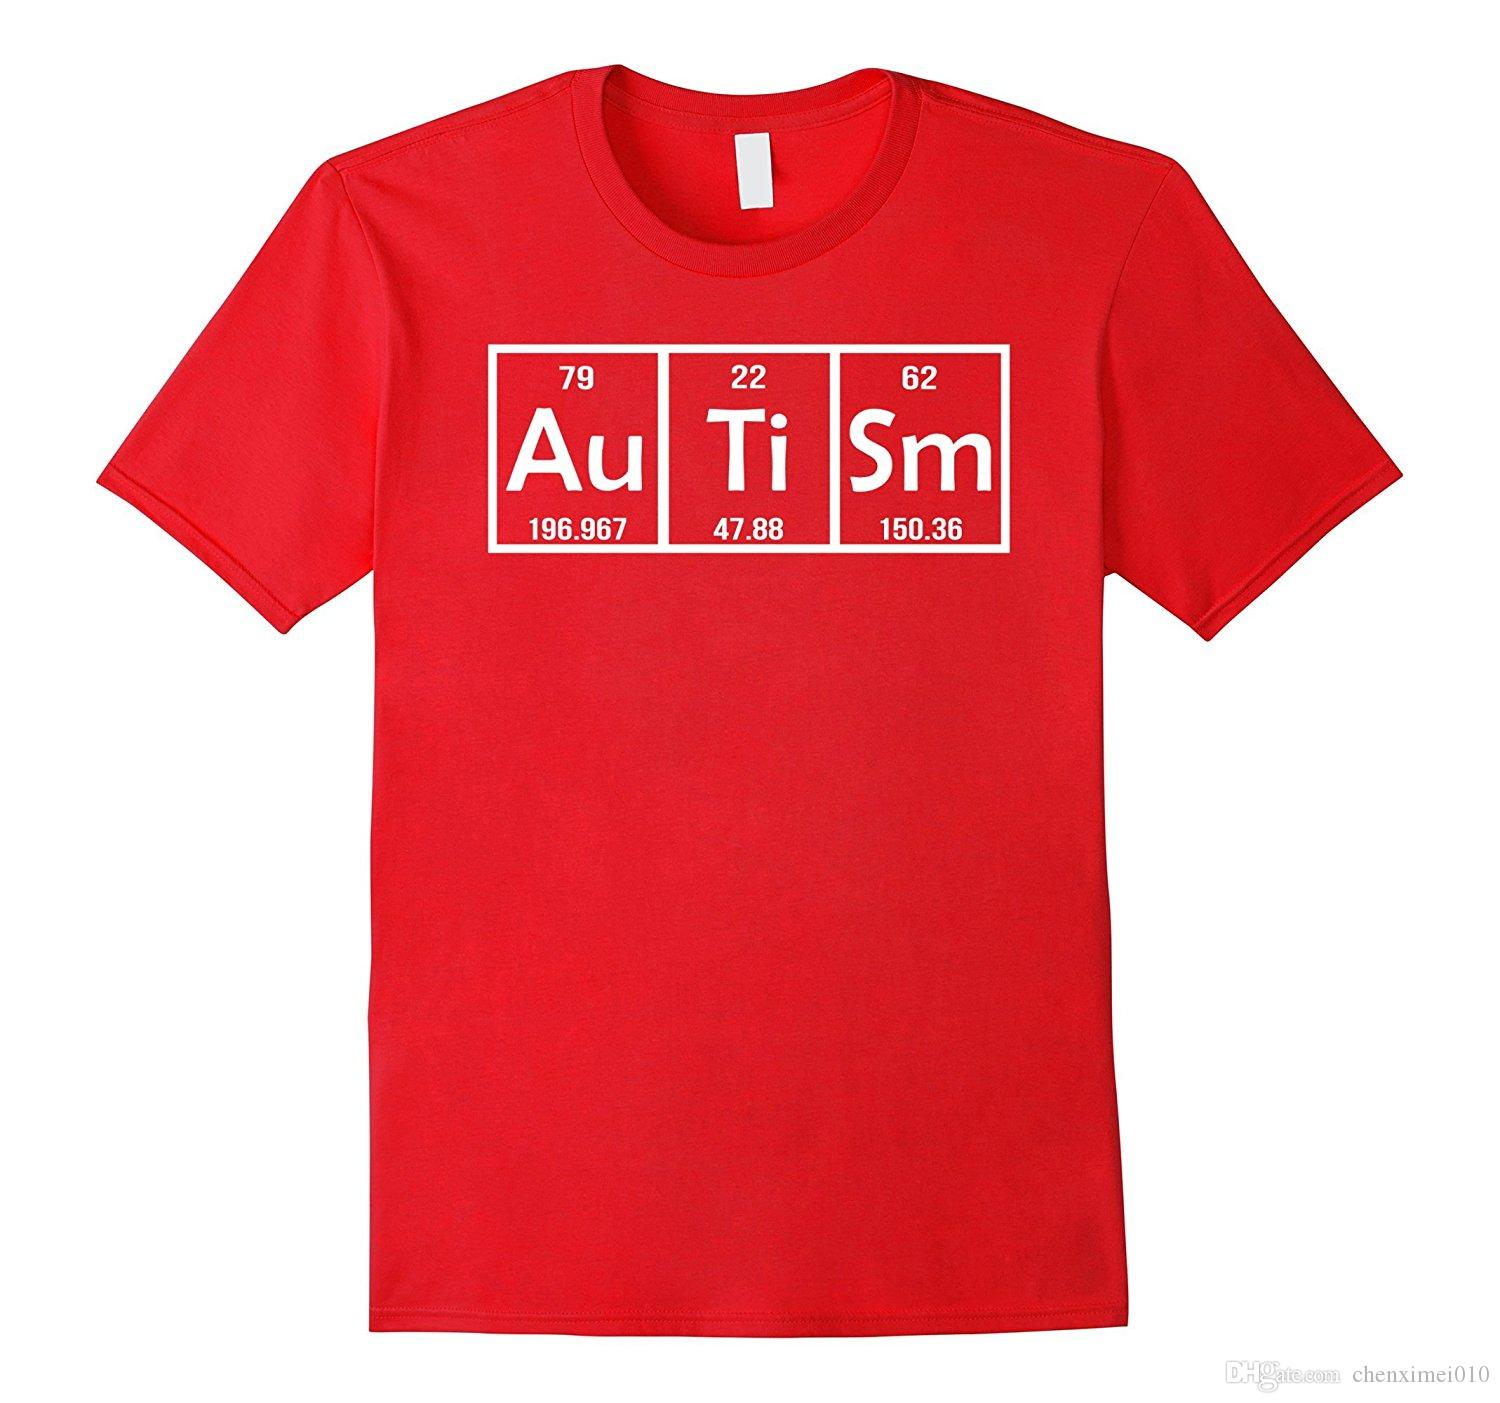 Autism gifts for adults funny periodic table t shirt custom shirt autism gifts for adults funny periodic table t shirt custom shirt black shirts from chenximei010 1207 dhgate urtaz Gallery